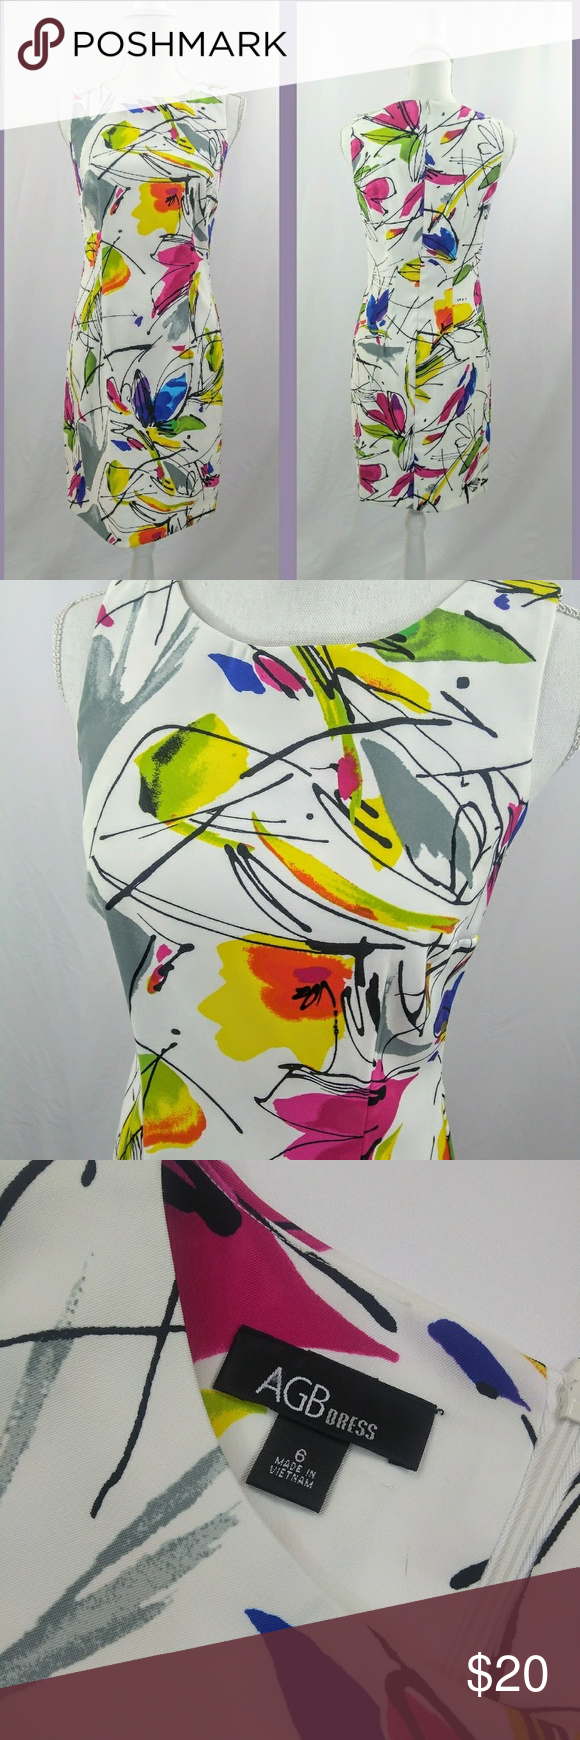 Agb dress multi color abstract floral size excellent pre loved condition also pinterest rh co